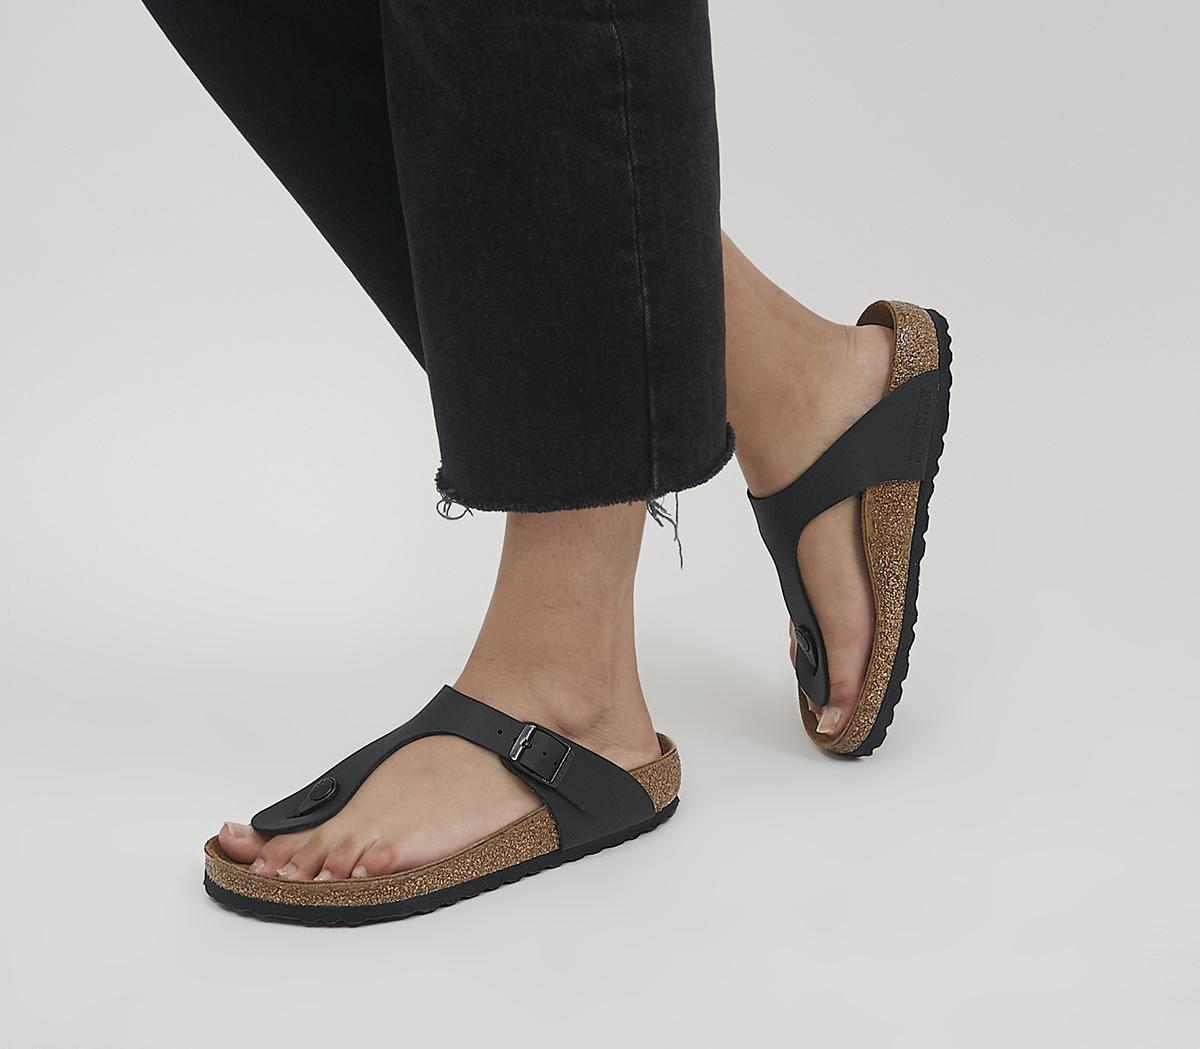 Gizeh Toe Thong Footbed Sandals